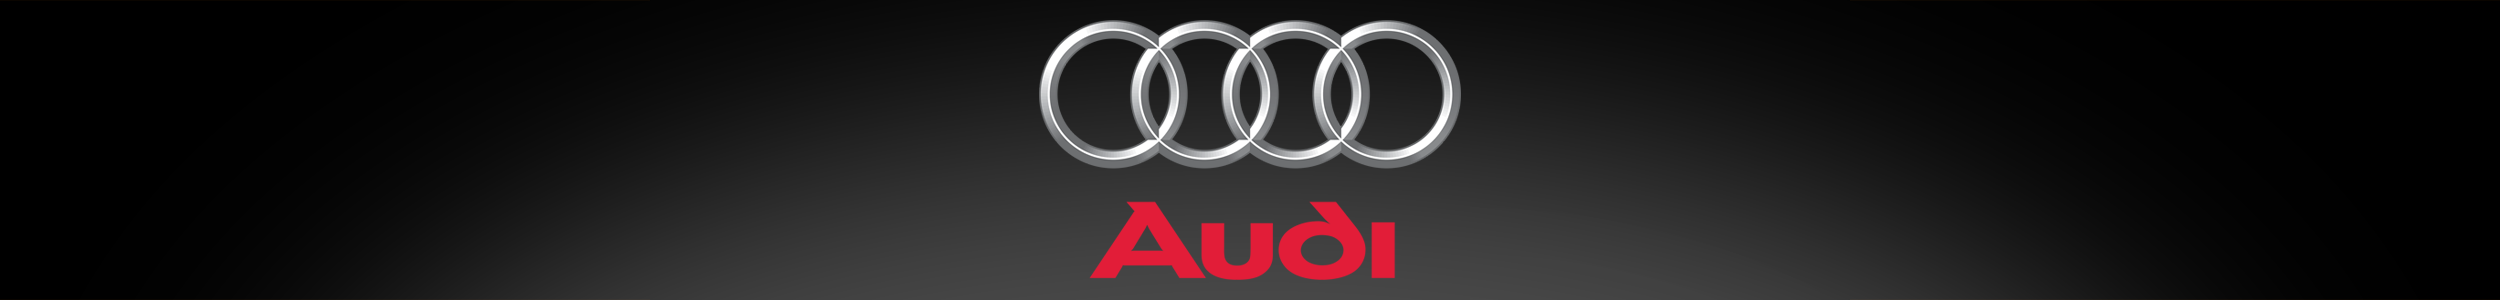 MB Lock & Key Auto Locksmiths | Audi Car Keys - Reprogrammed or Replaced in Norwich, Norfolk